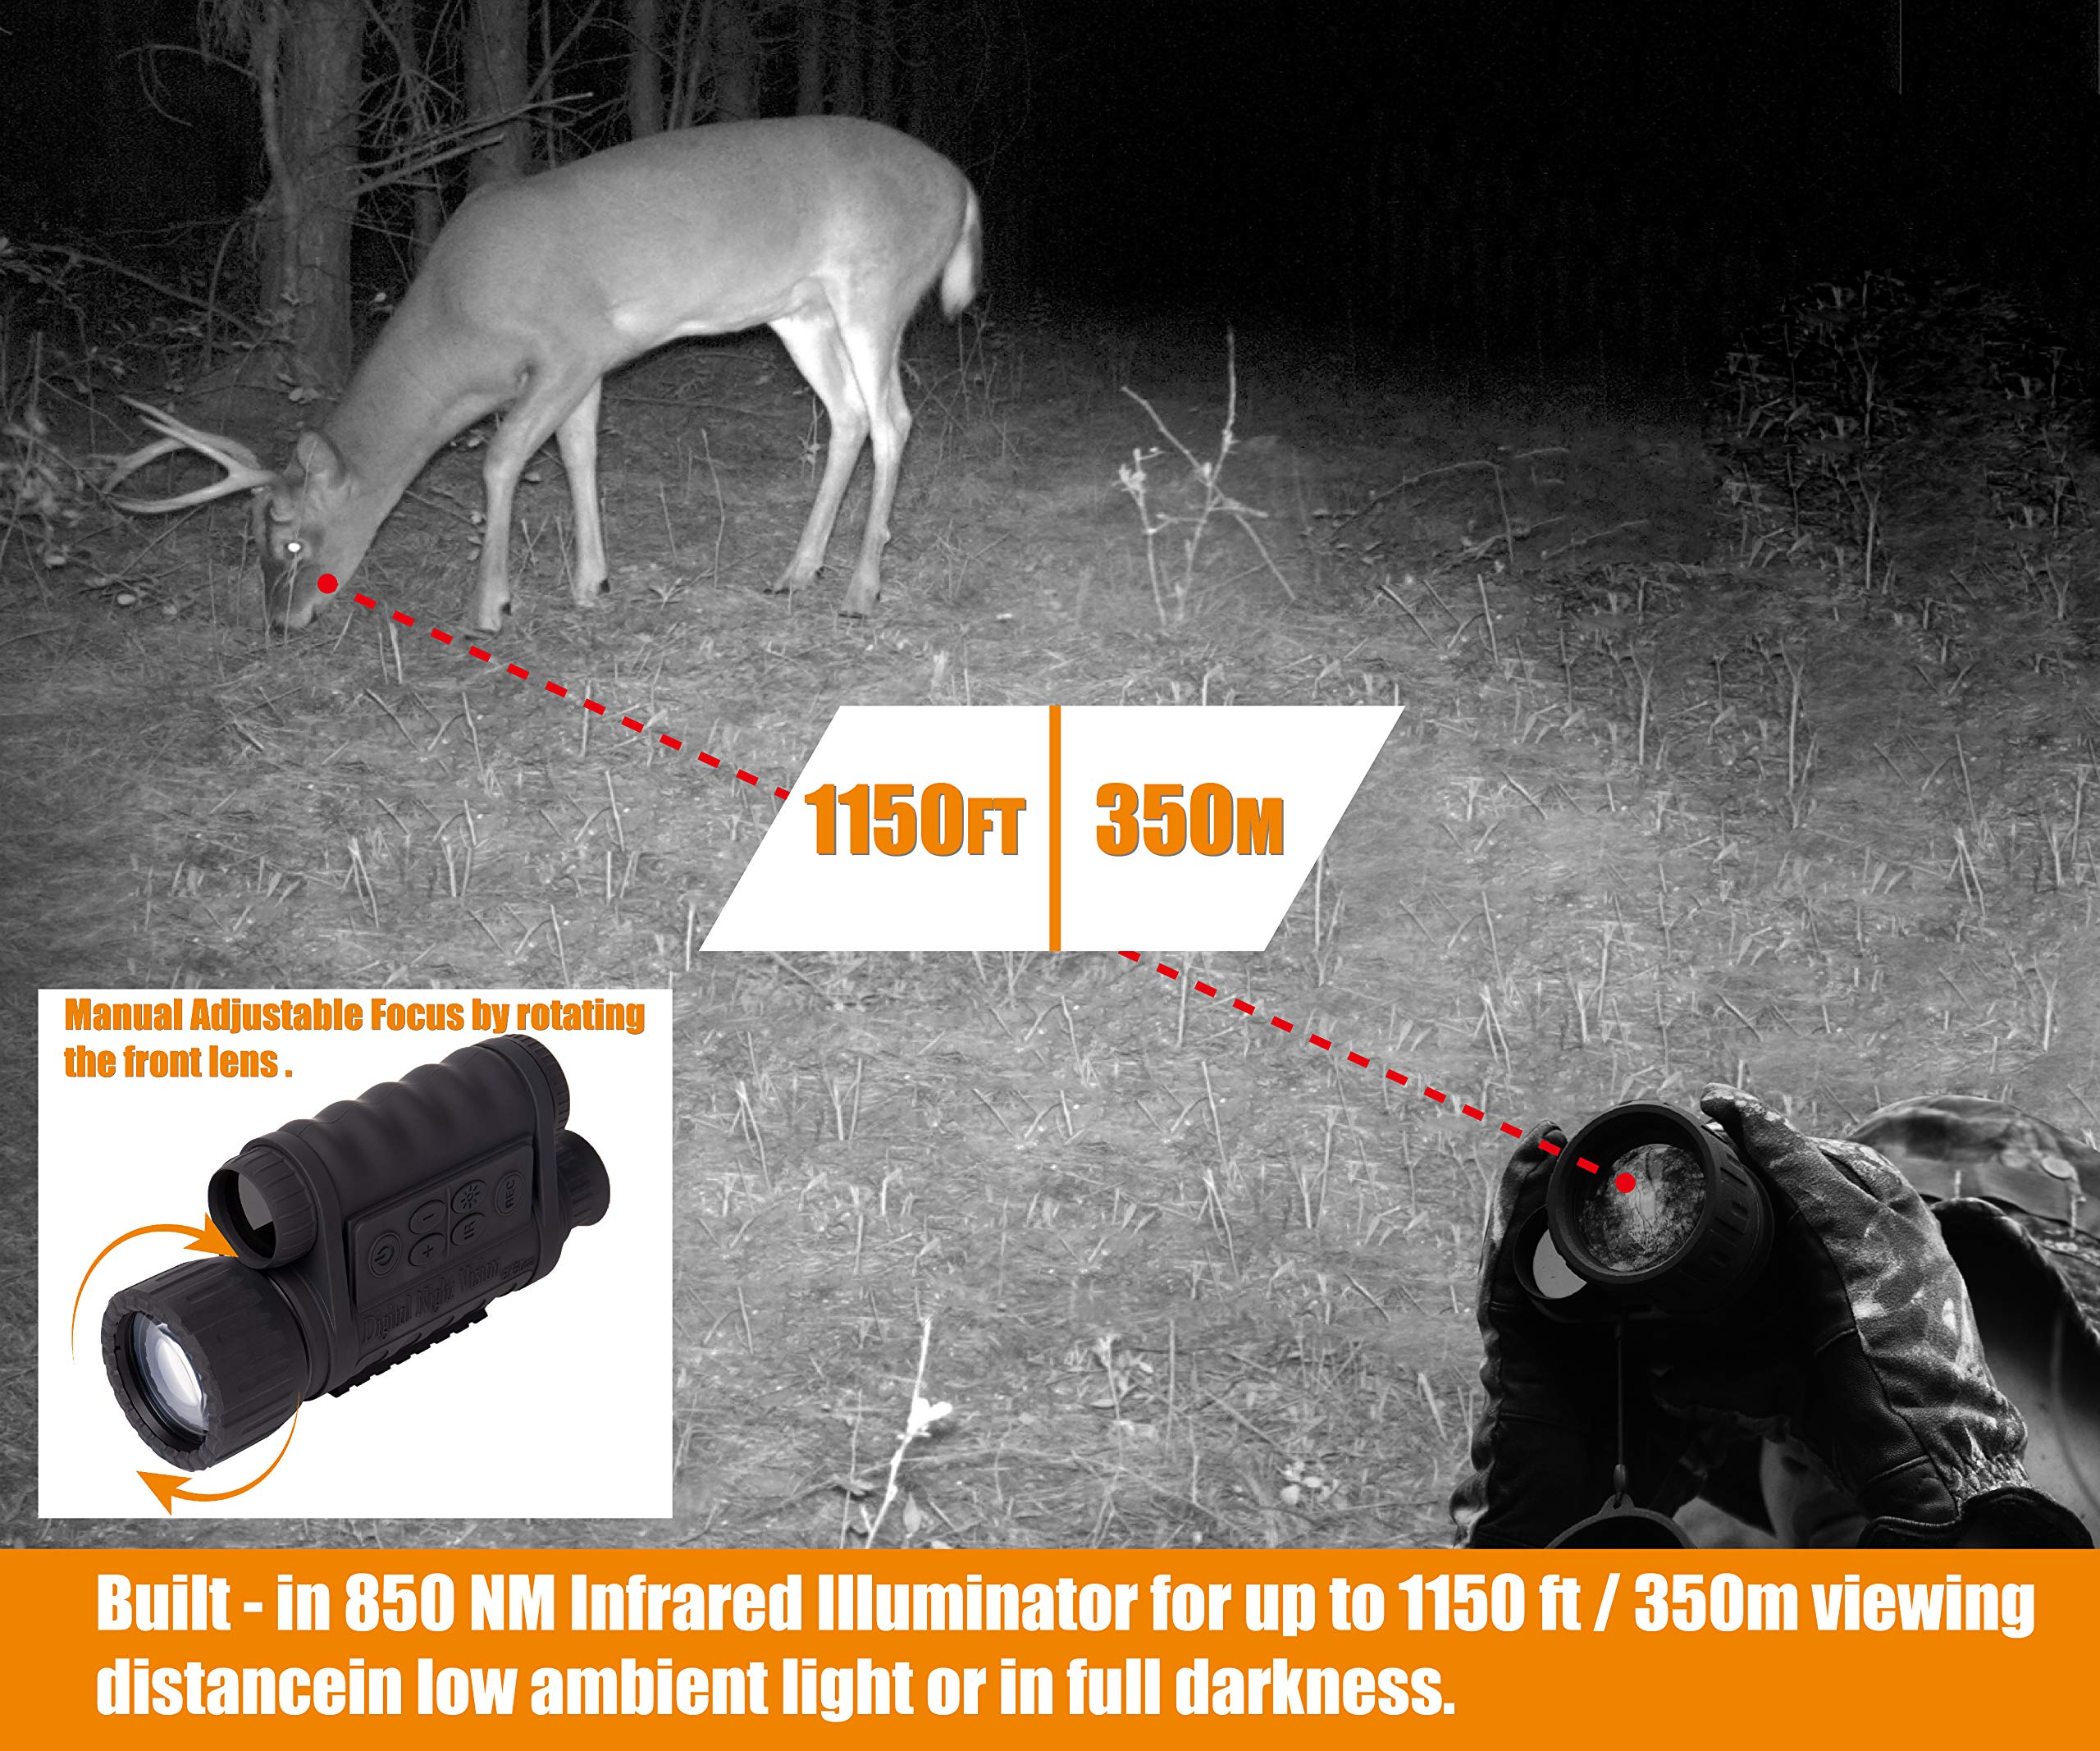 Summit Tools HD Digital Night Vision Monocular up to 1150 FT Range, 1.5-inch Display with Camera&Camcorder Function, 6X Magnification and 50 mm Objective Lens, Takes 5MP Photo & HD Video by Summit Tools (Image #5)